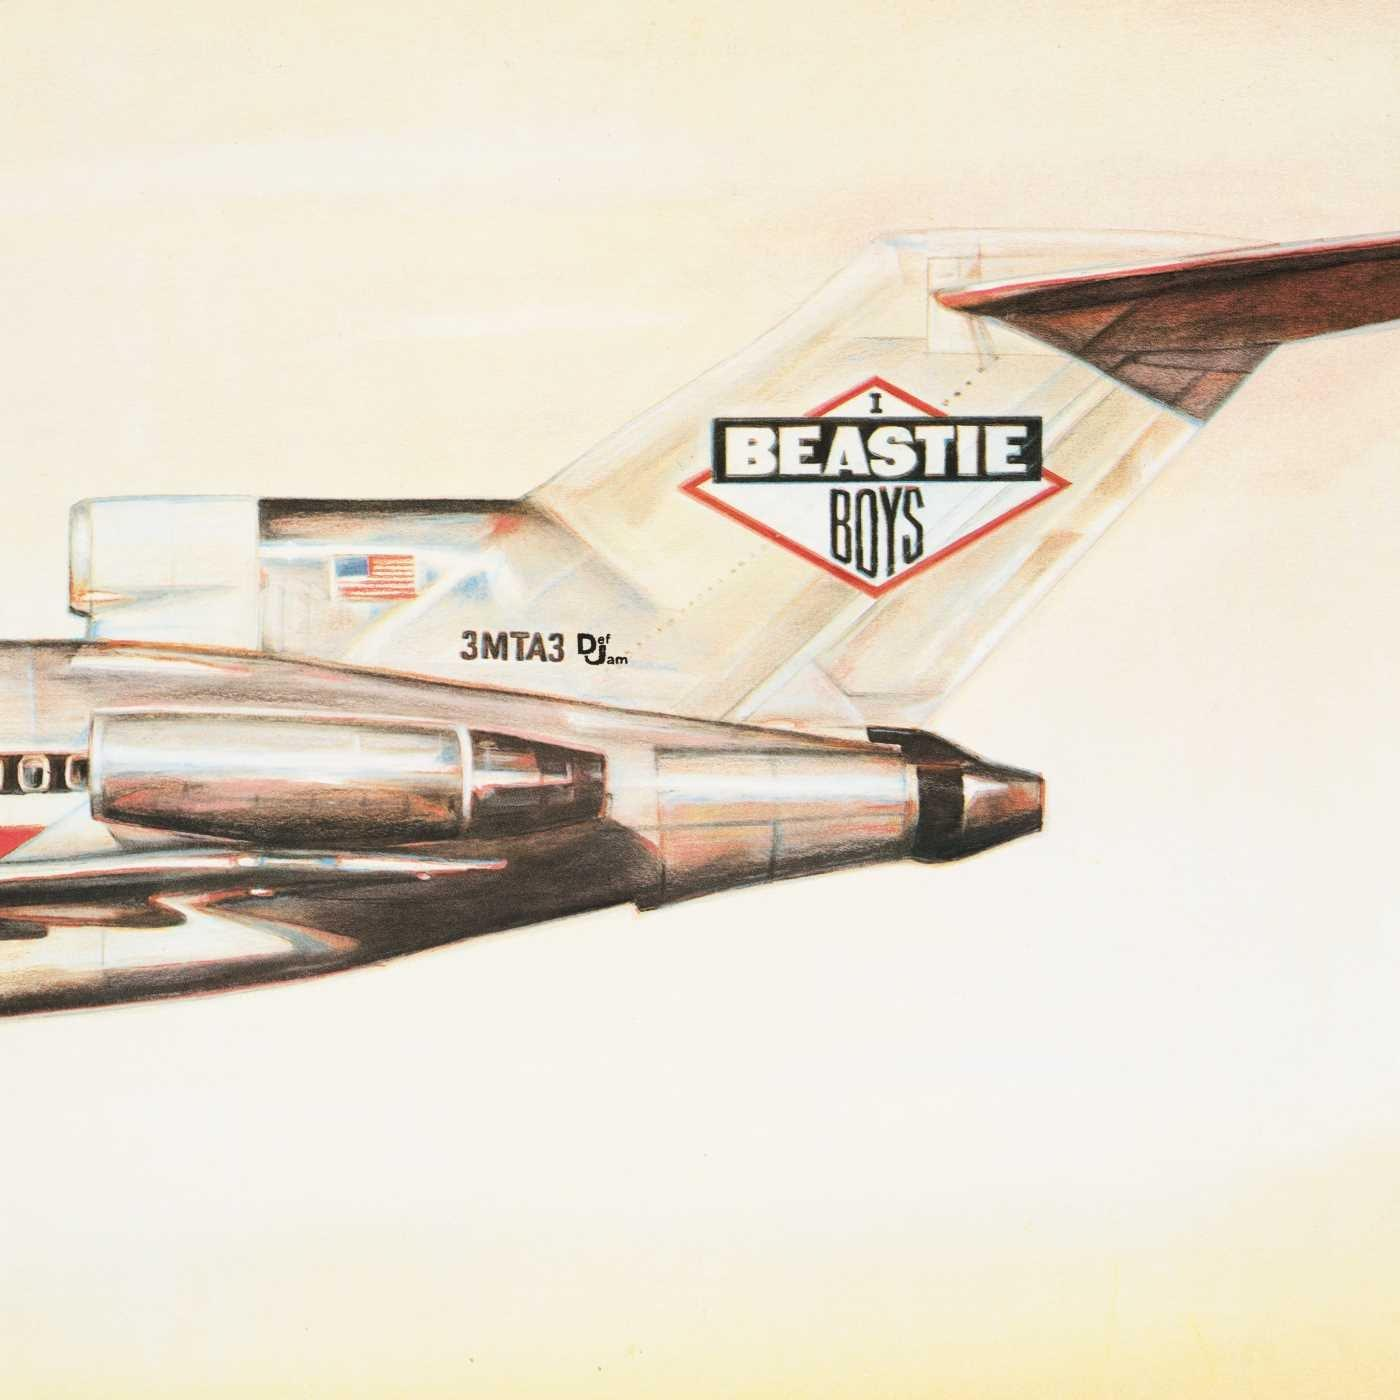 20 Albums, 20 Days: Licensed to Ill